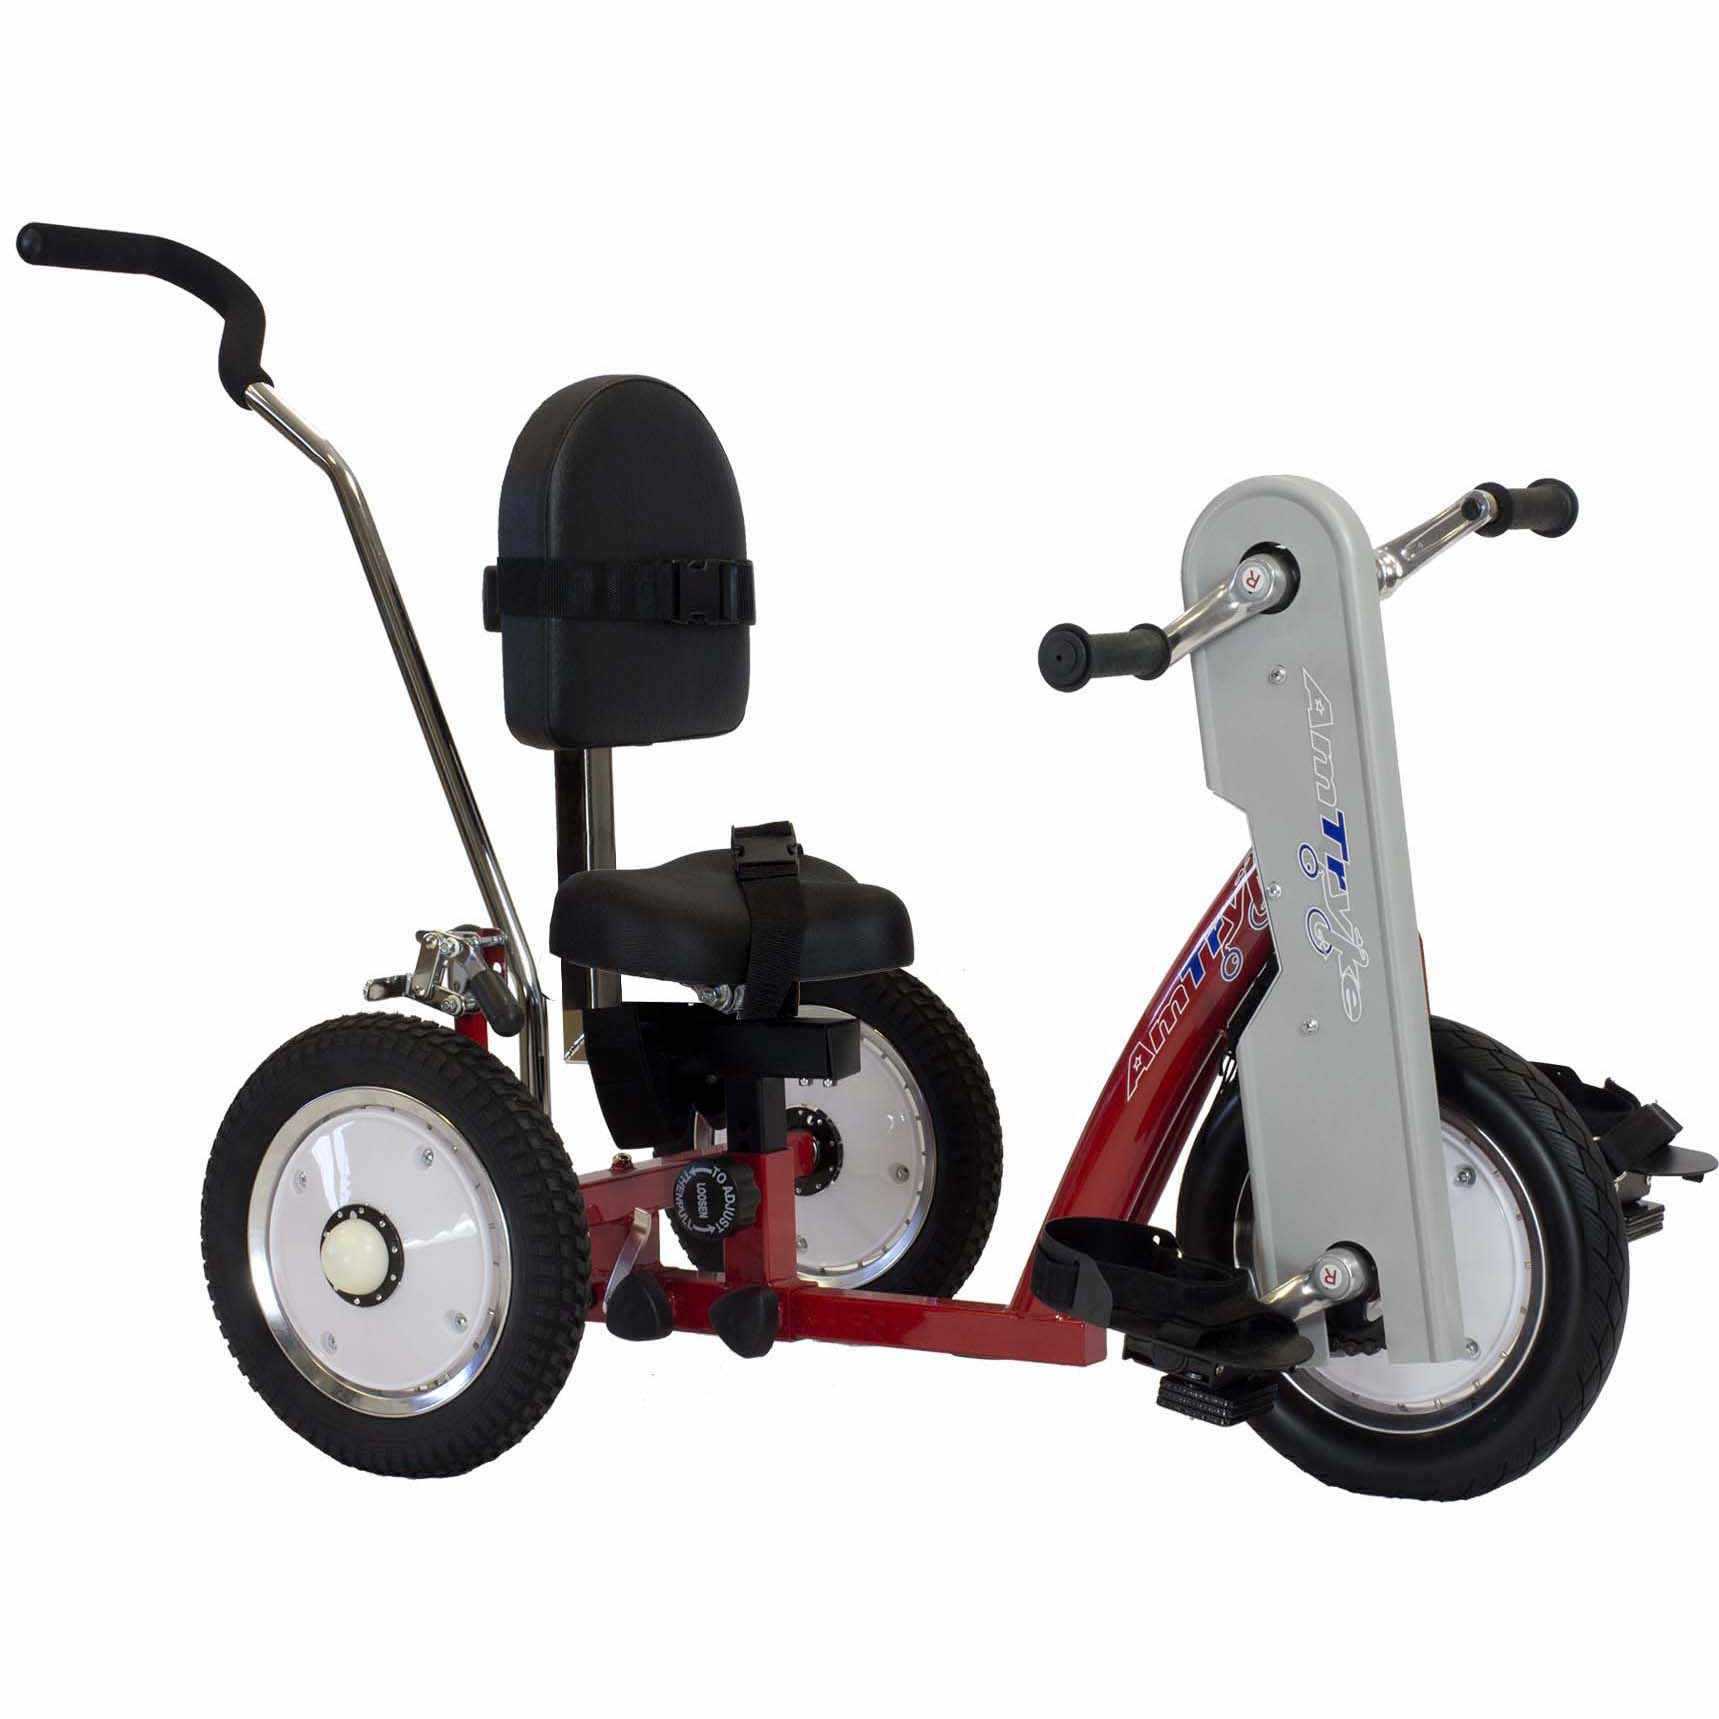 Amtryke AM-16 Tricycle | Amtryke Tricycles (AM-16) - Medicaleshop